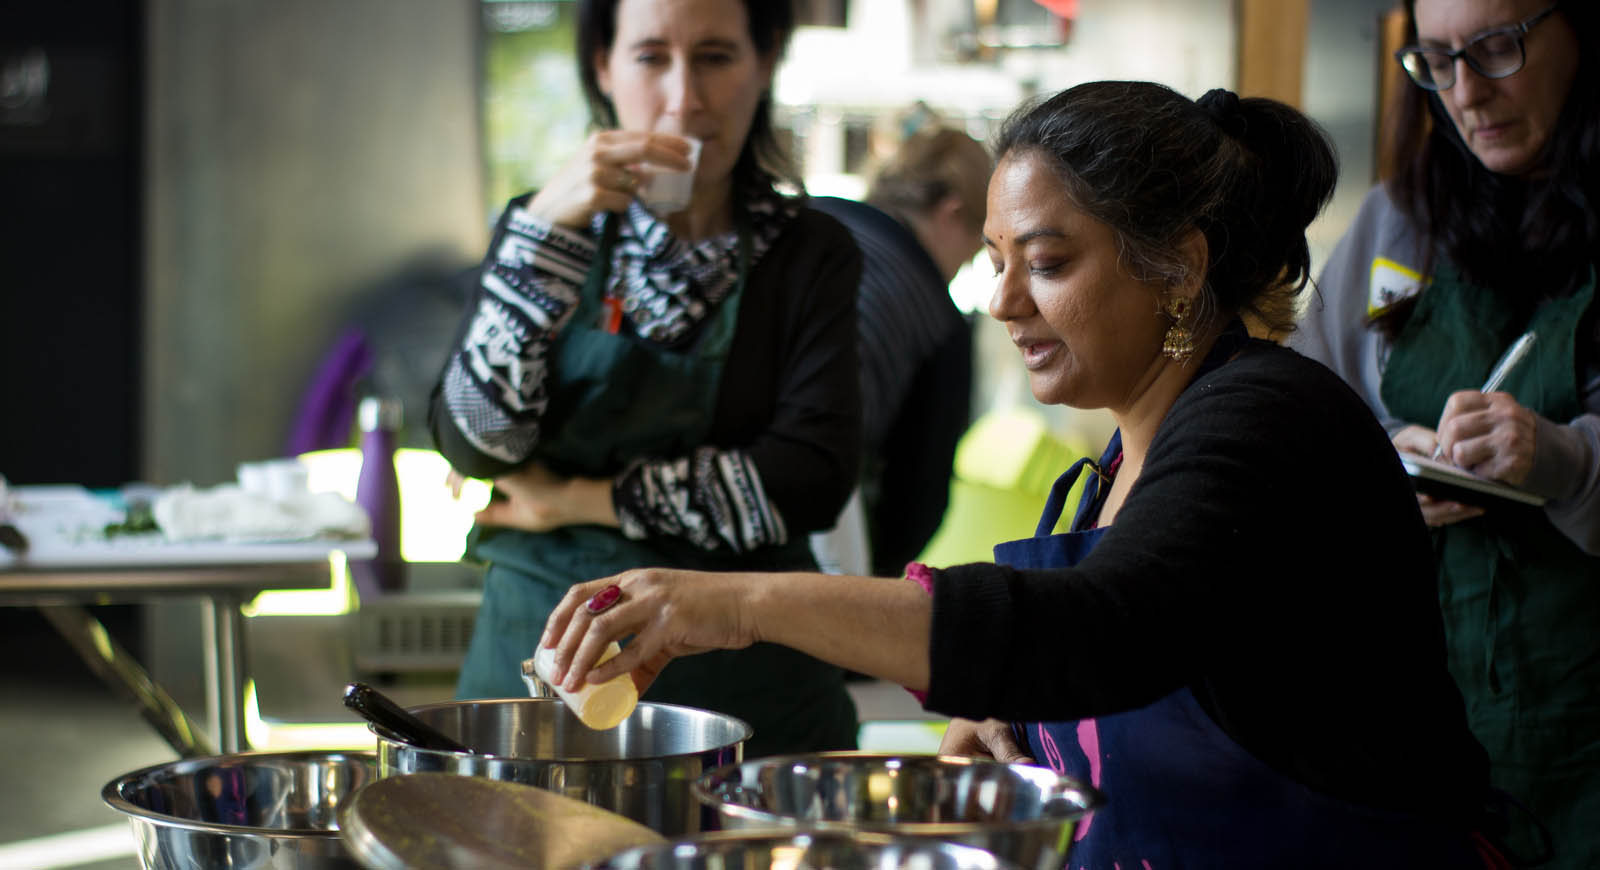 Photo of an Indian woman leading a cooking class, while two women in the background pay attention.